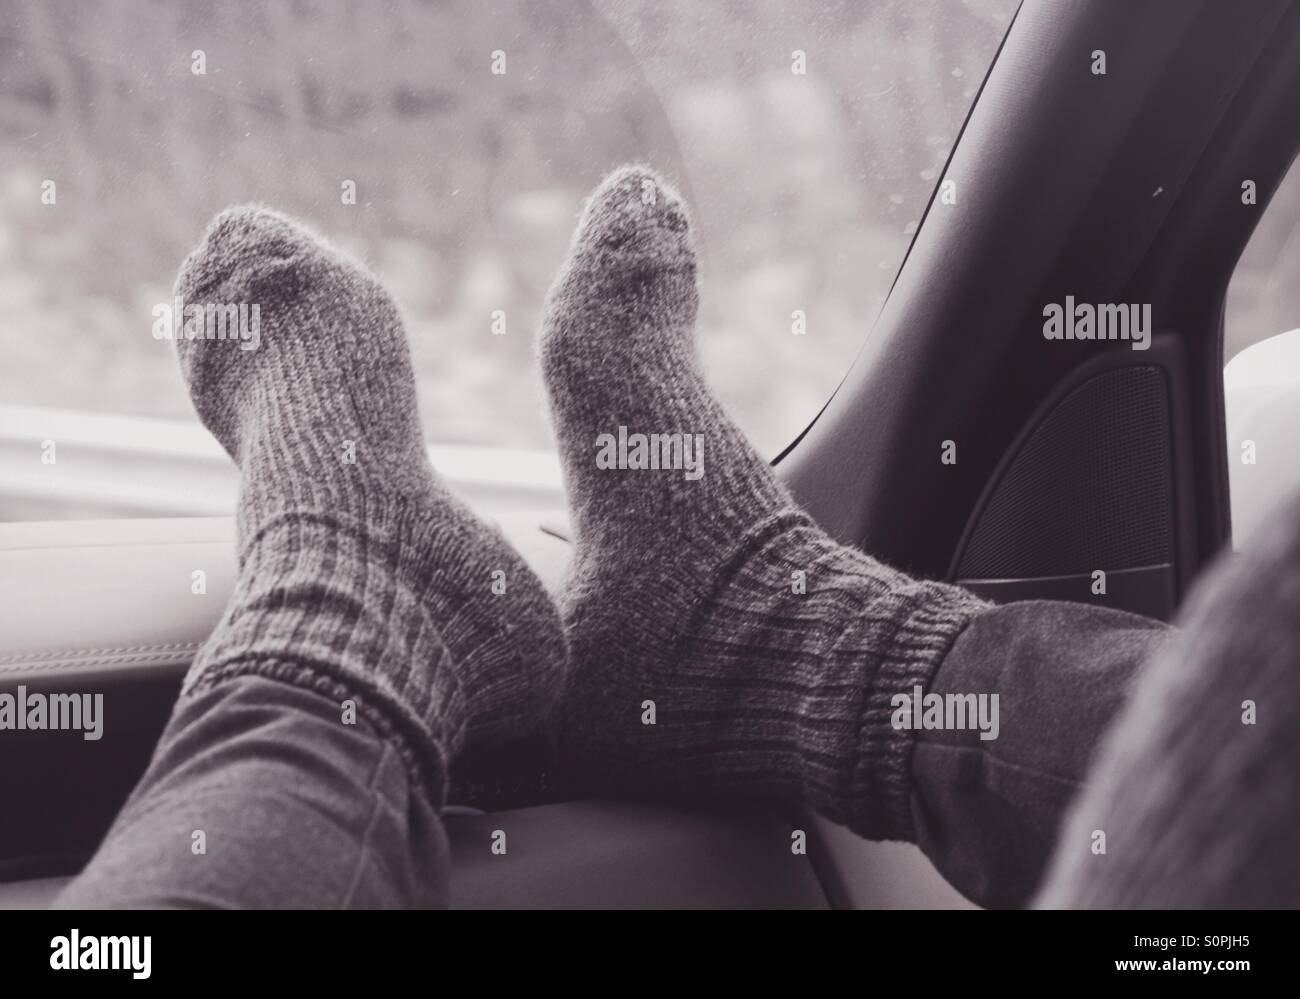 Feet with wool socks on the dash - Stock Image